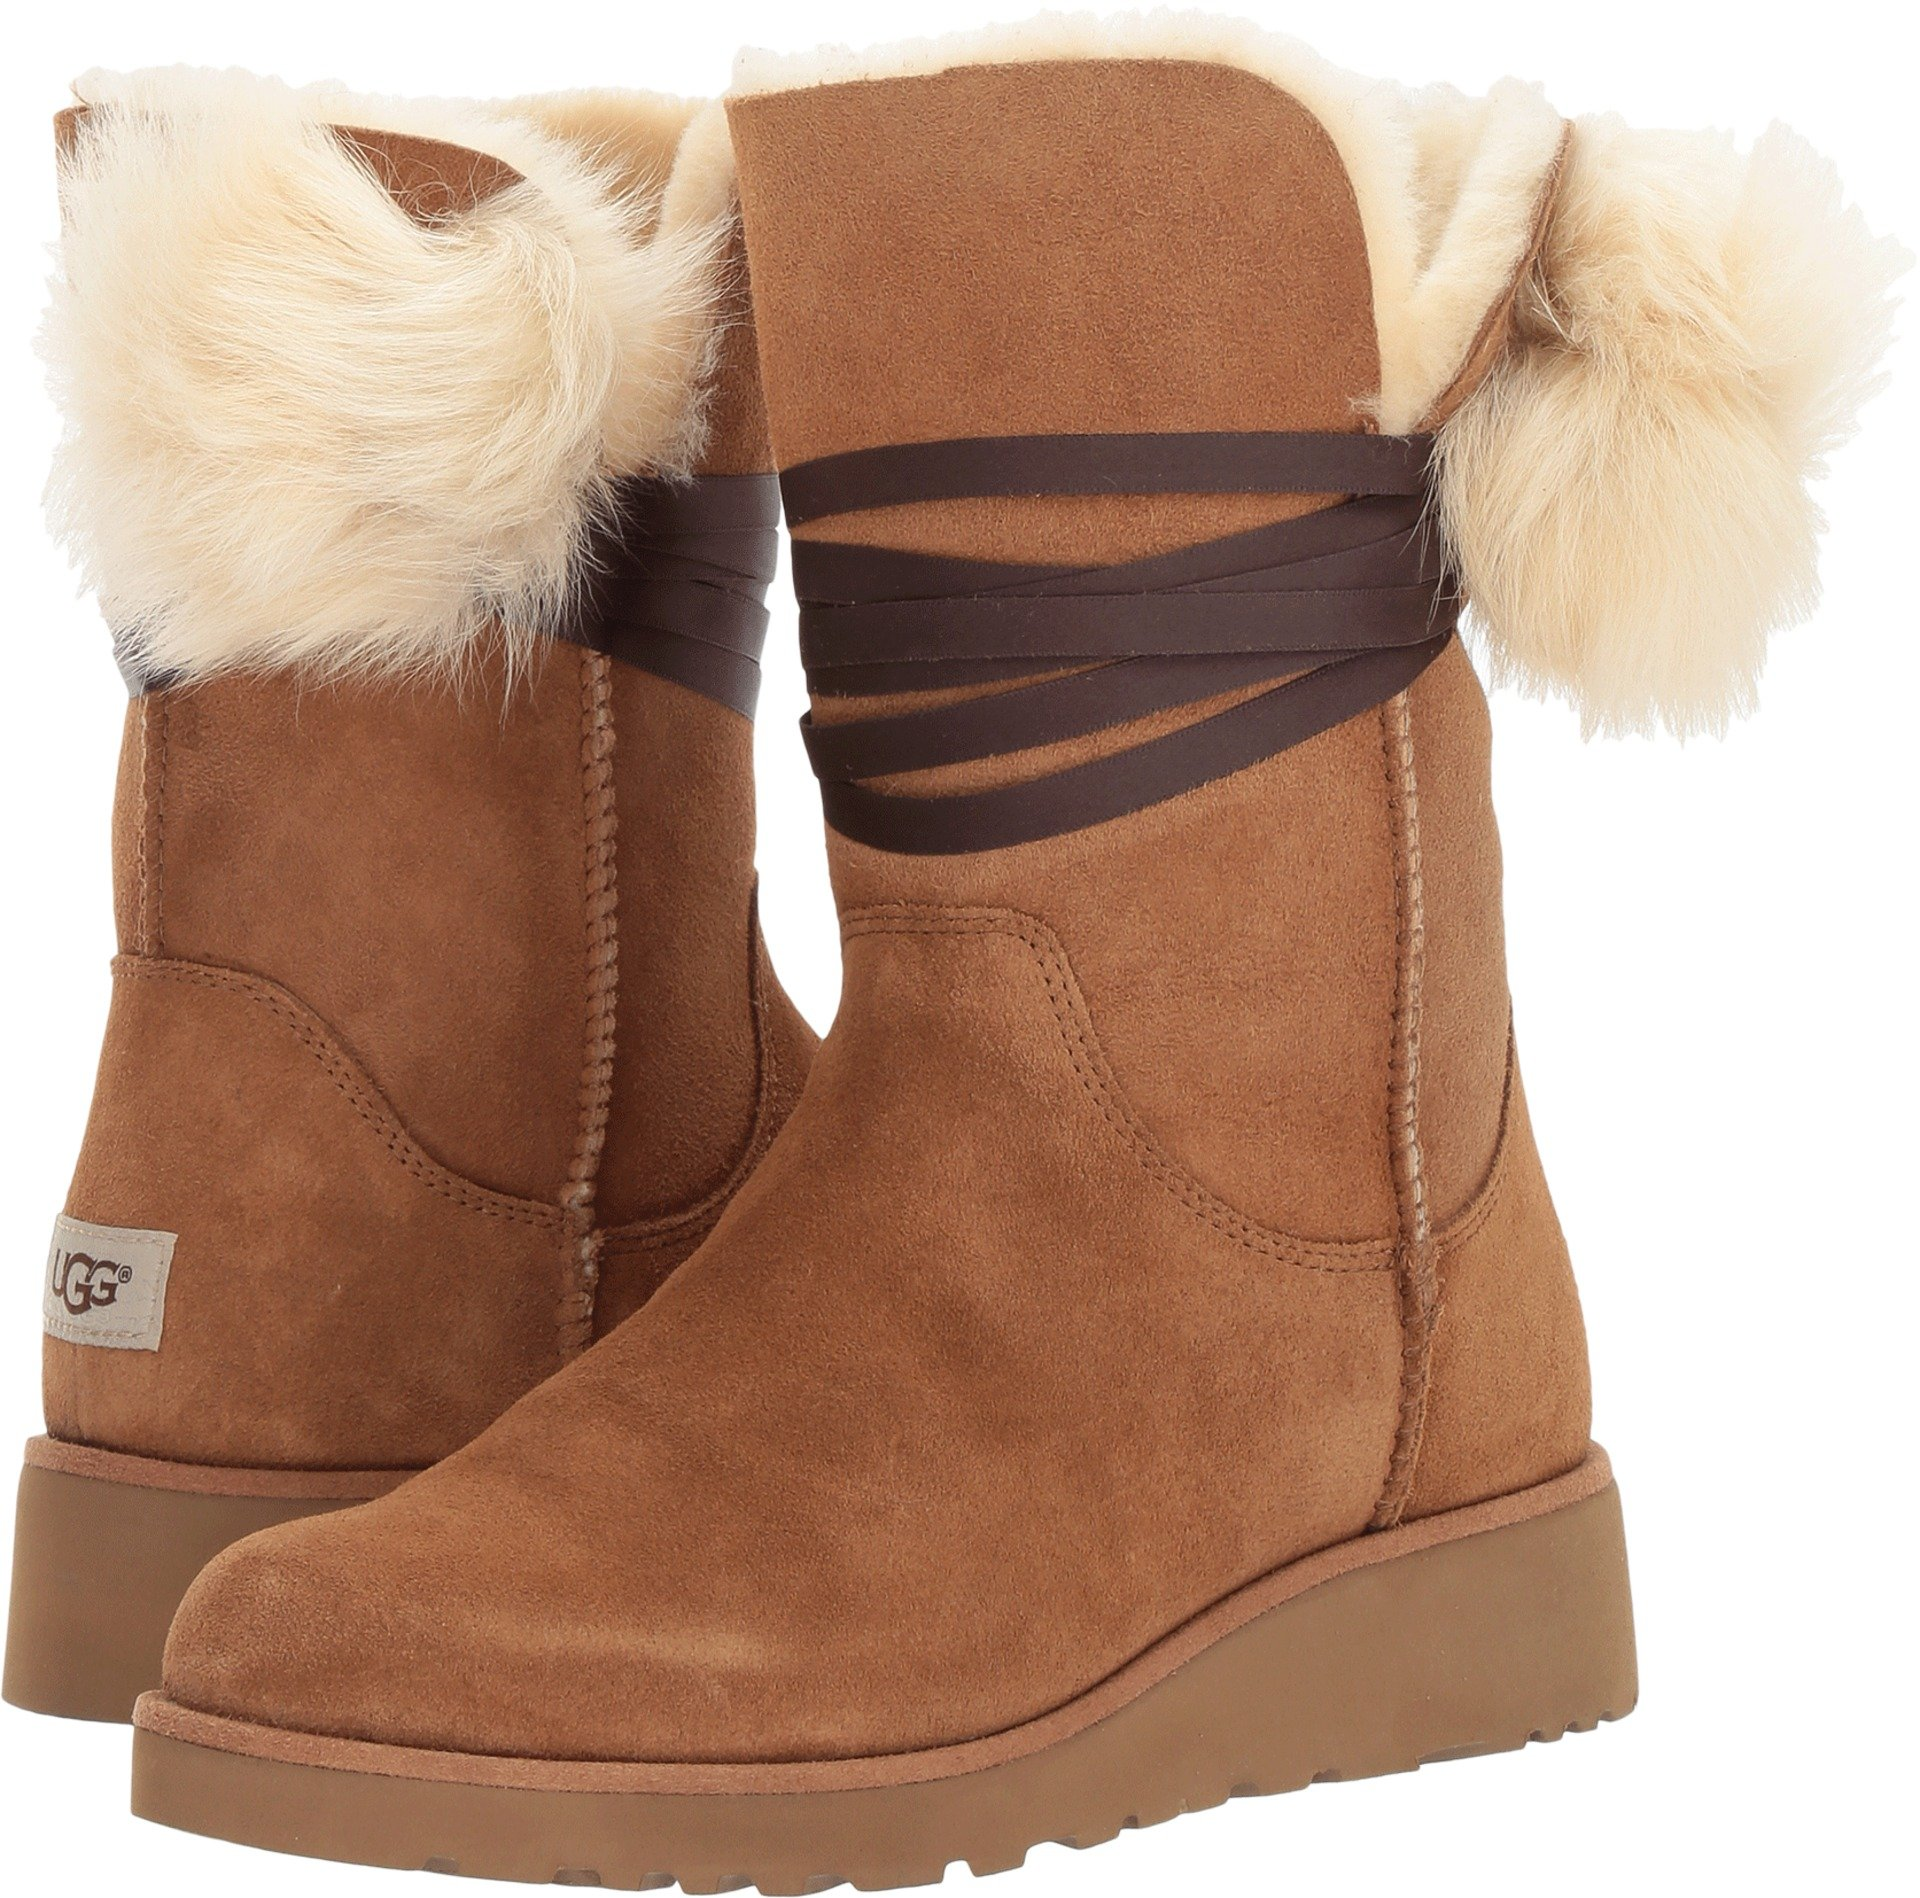 UGG Womens Brita Boot Chestnut Size 6.5 by UGG